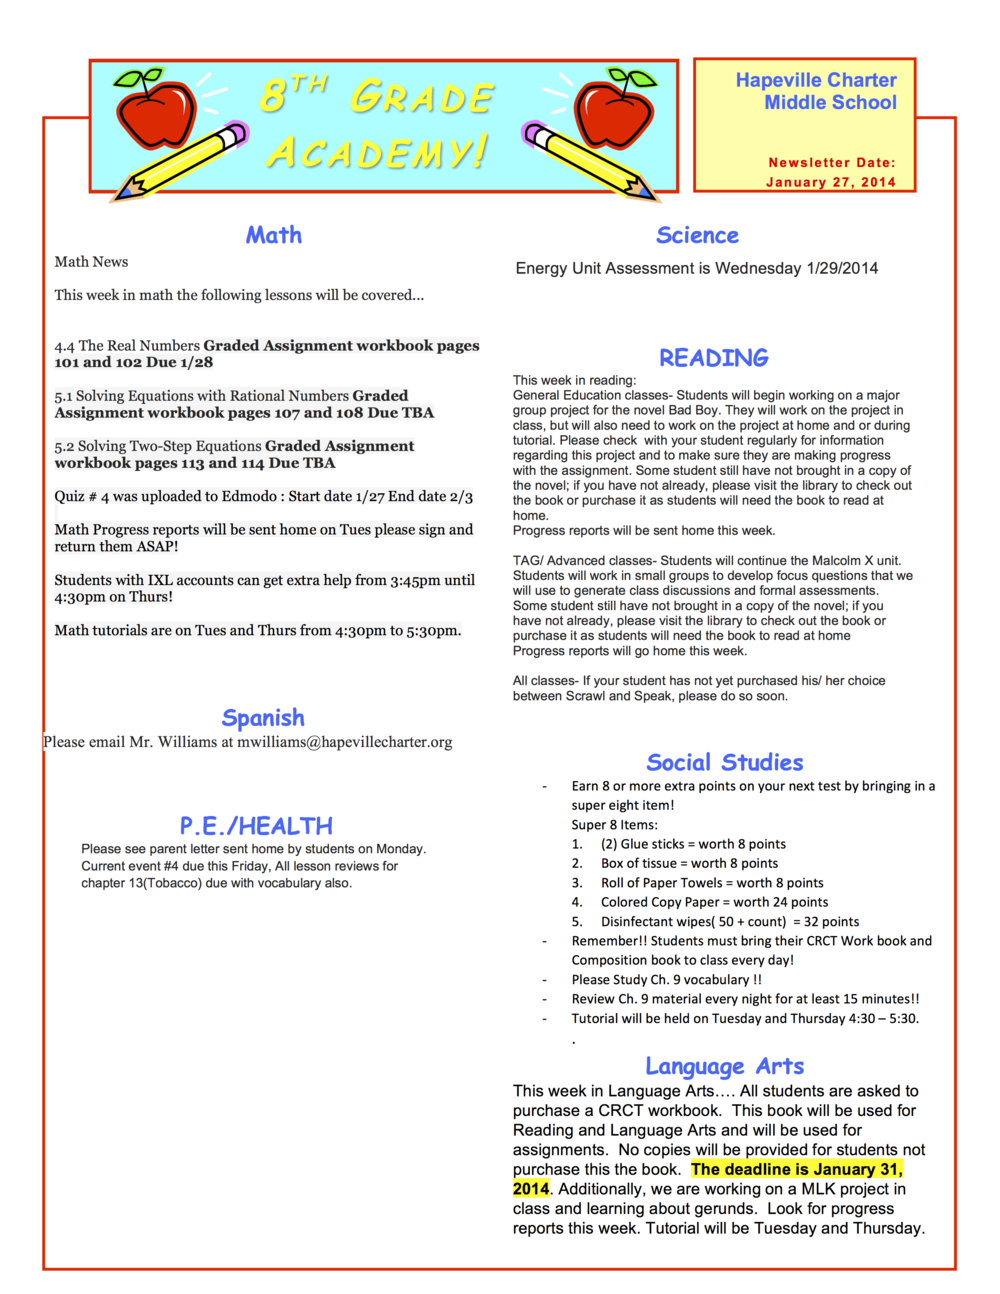 8th grade newsletter January 27A.png